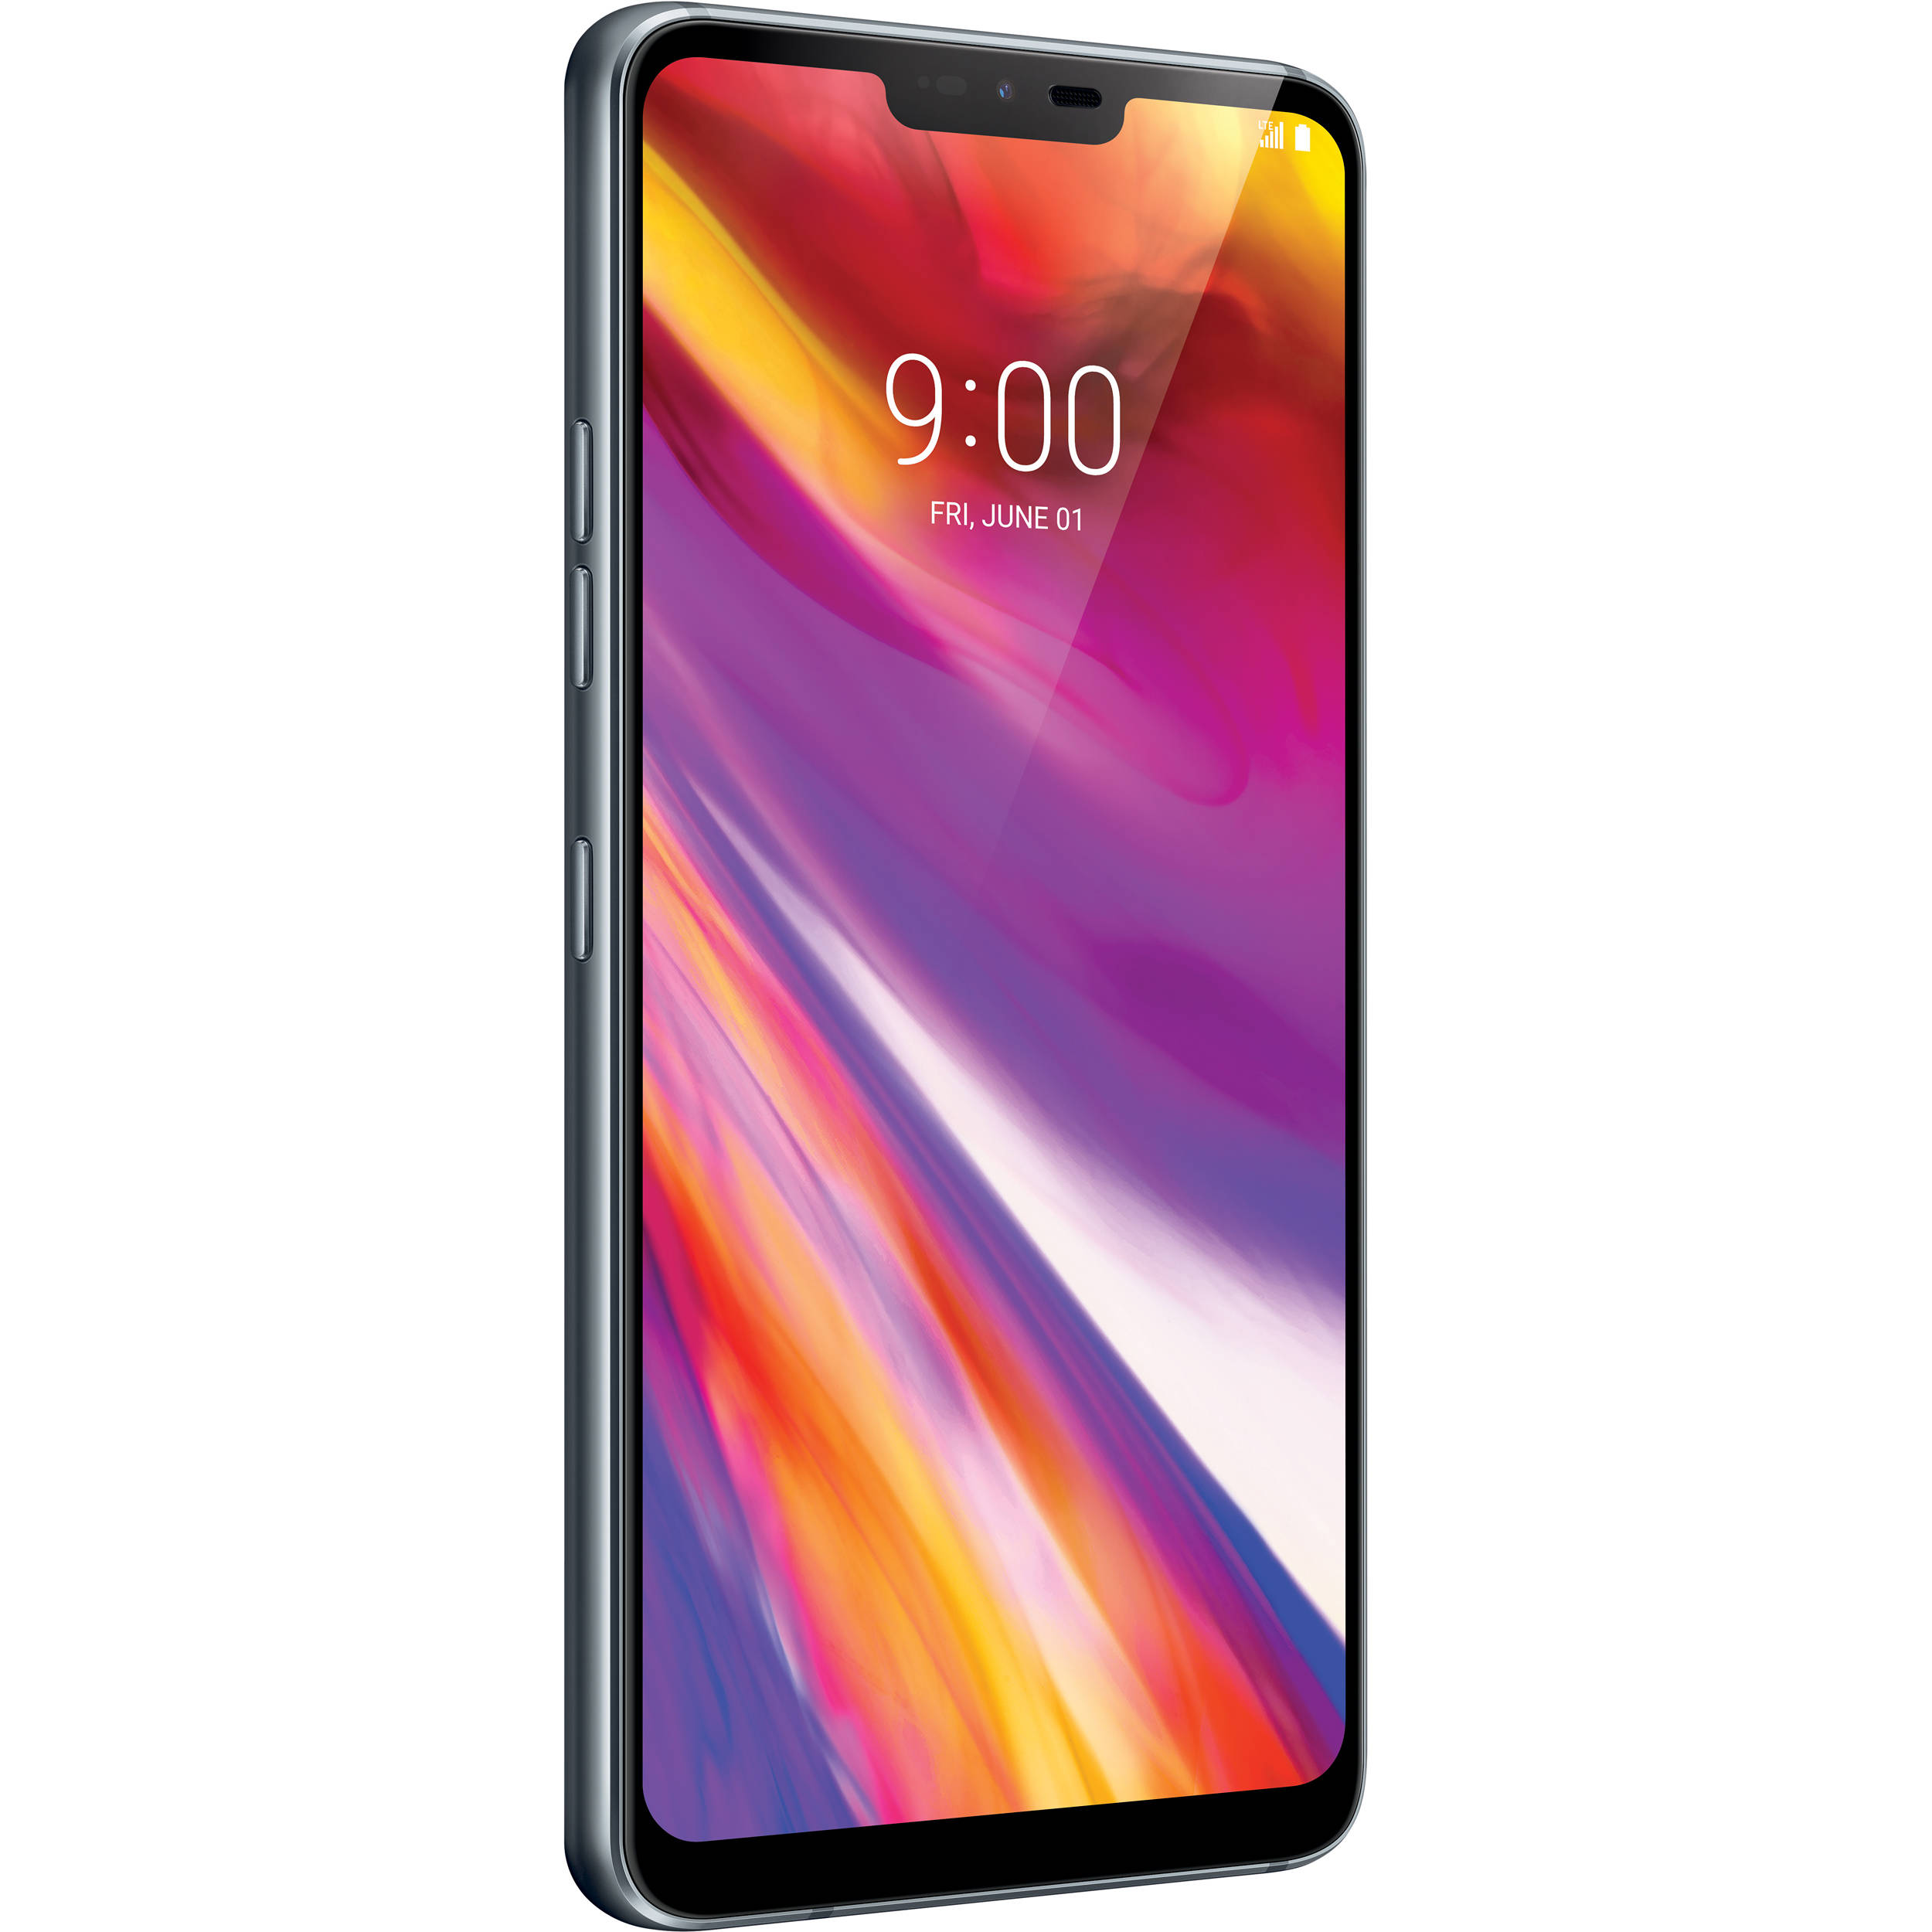 Lg G7 Thinq 64gb Smartphone Unlocked Platinum